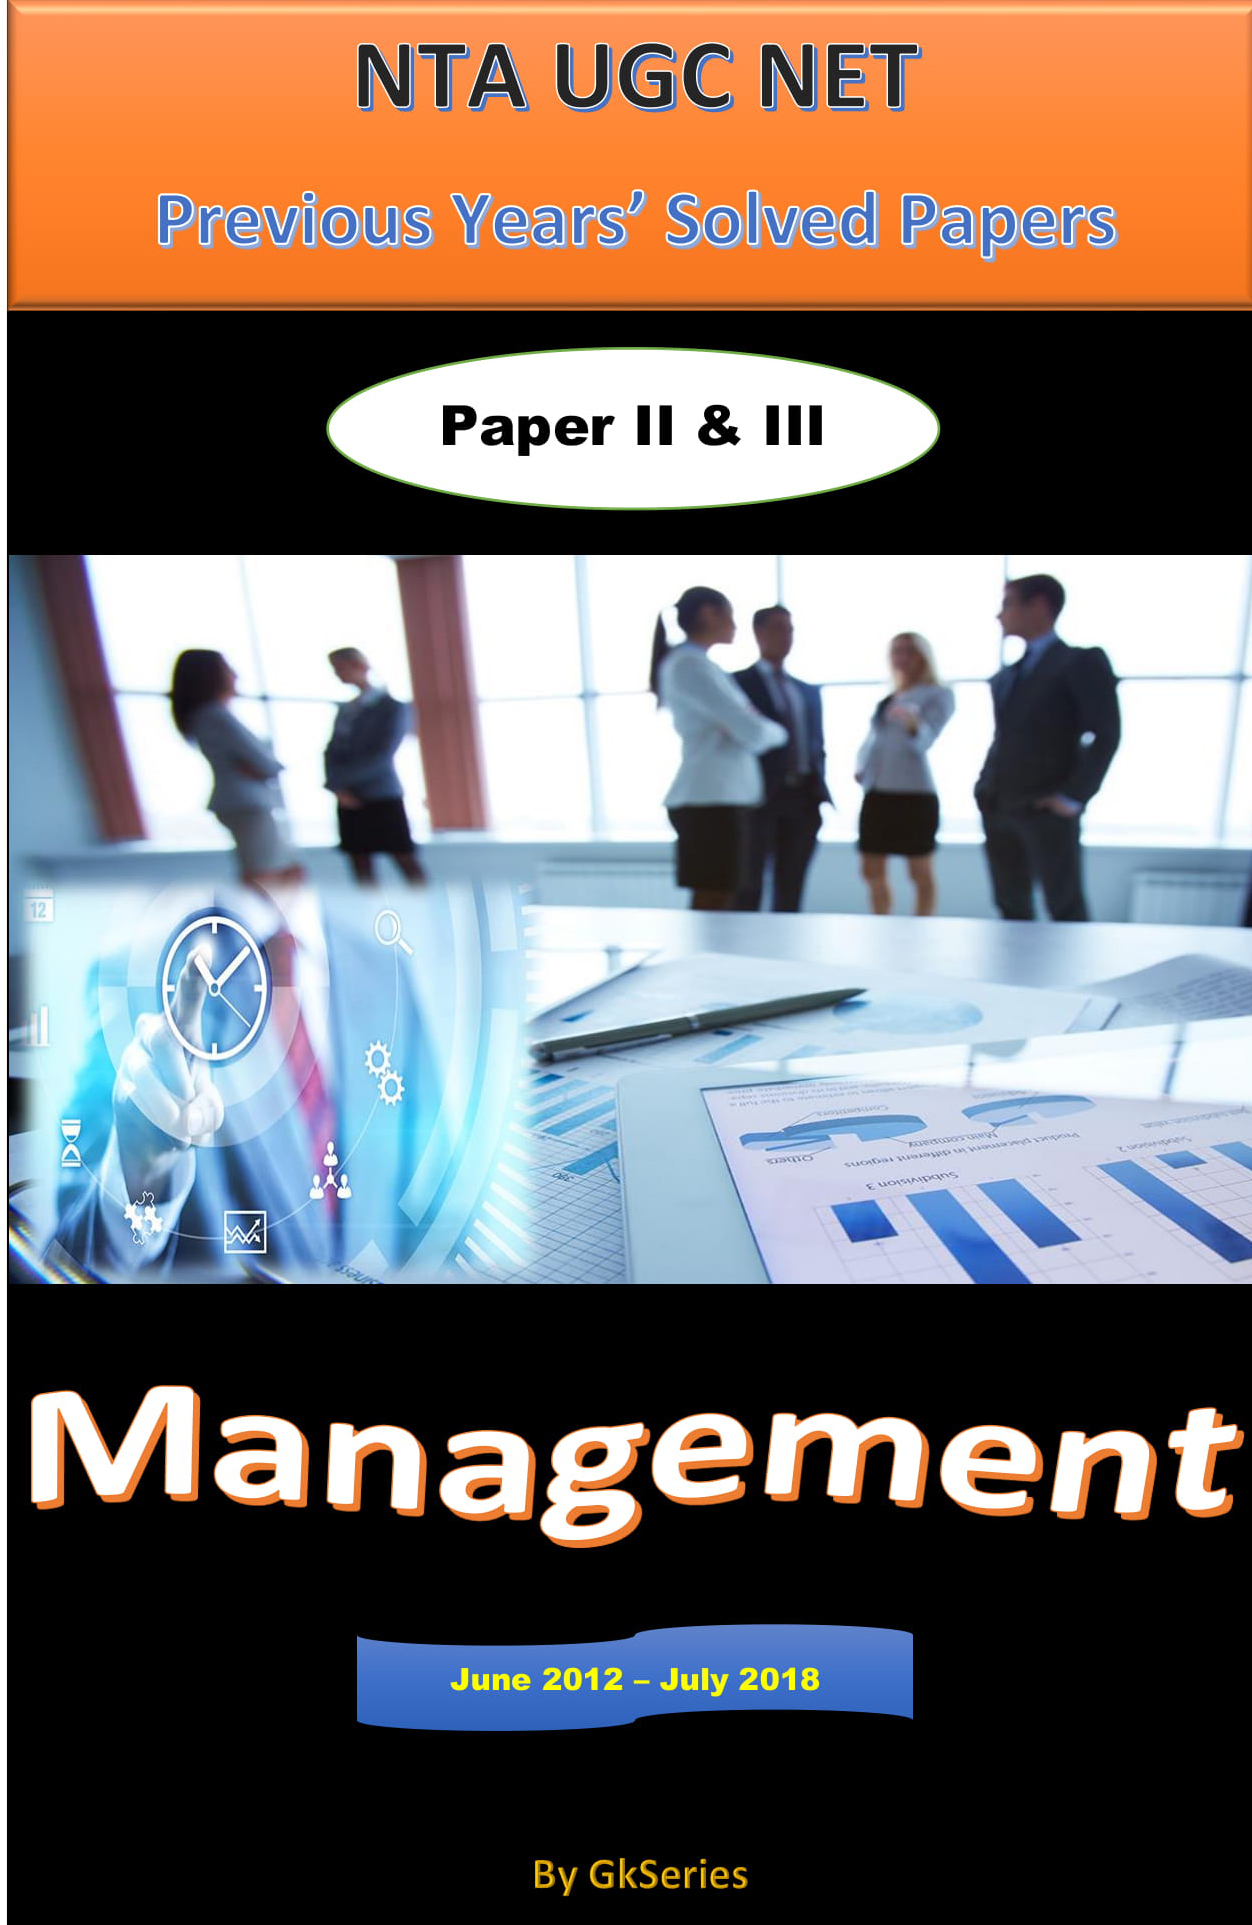 NTA UGC NET PREVIOUS YEARS SOLVED PAPERS MANAGEMENT